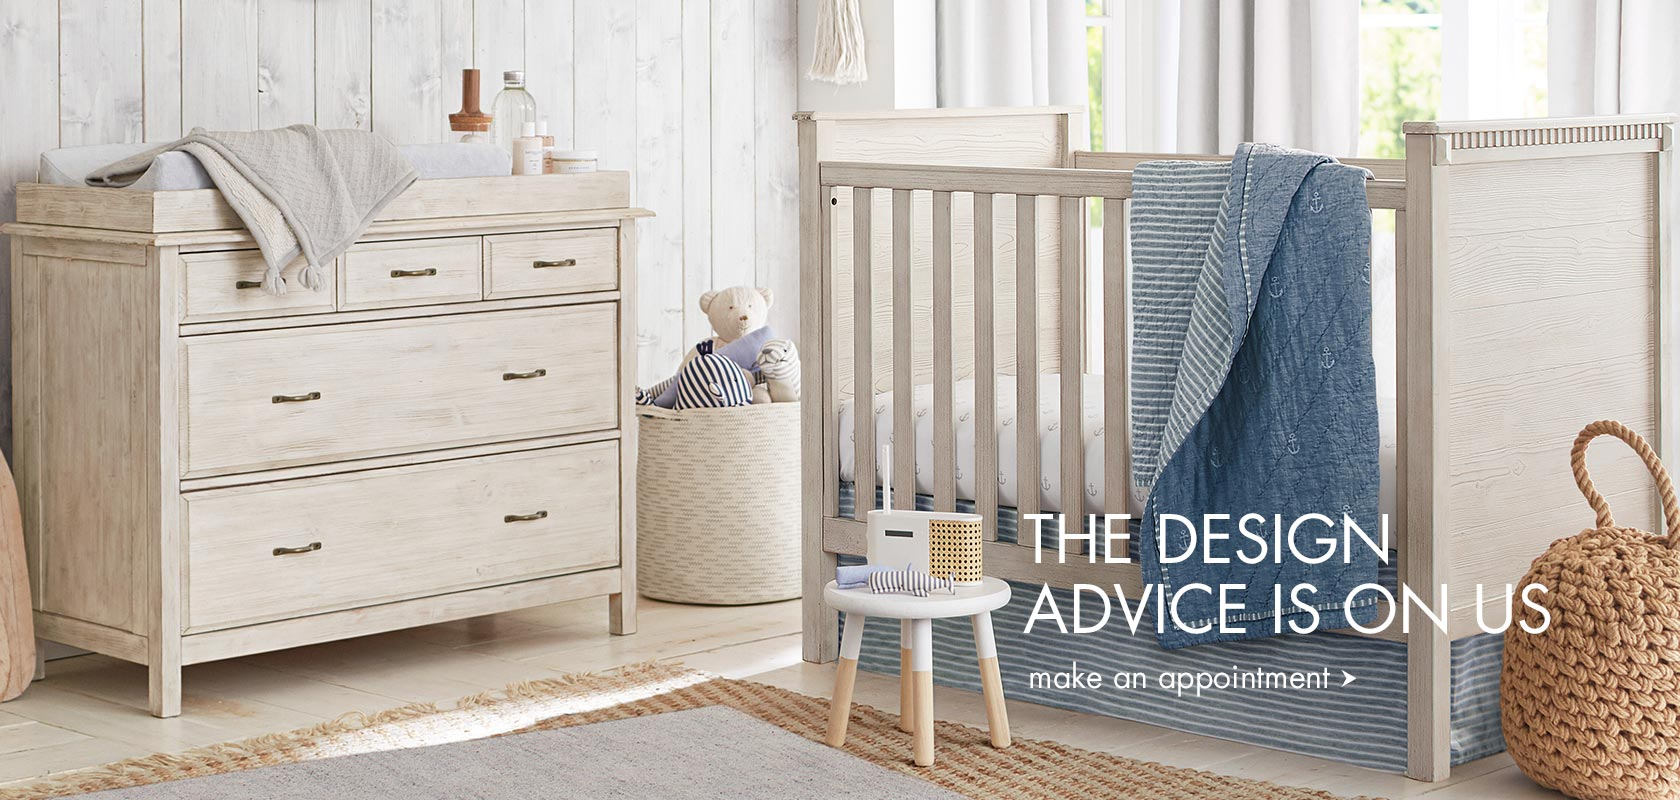 The design advice is on us